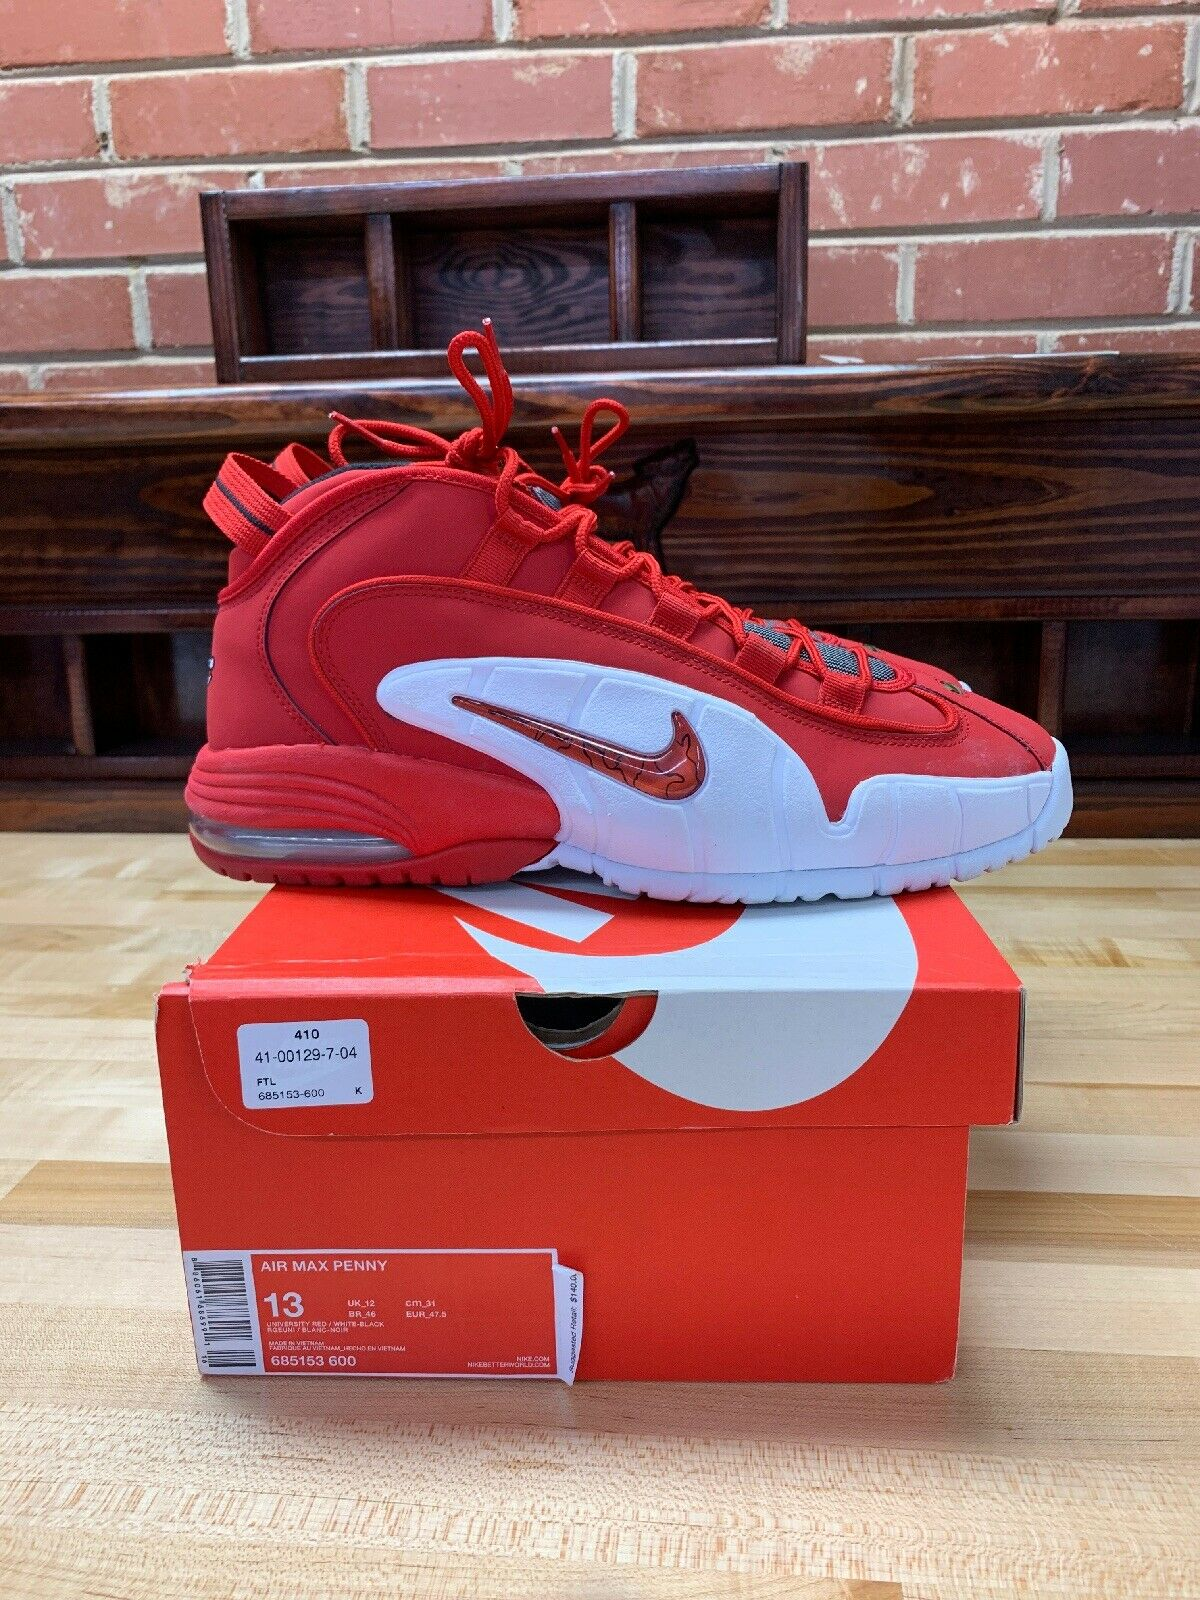 0a711c50f6a Nike Air Max Sz 13 Rival Pack Penny nfzoui4491-Athletic Shoes - www ...